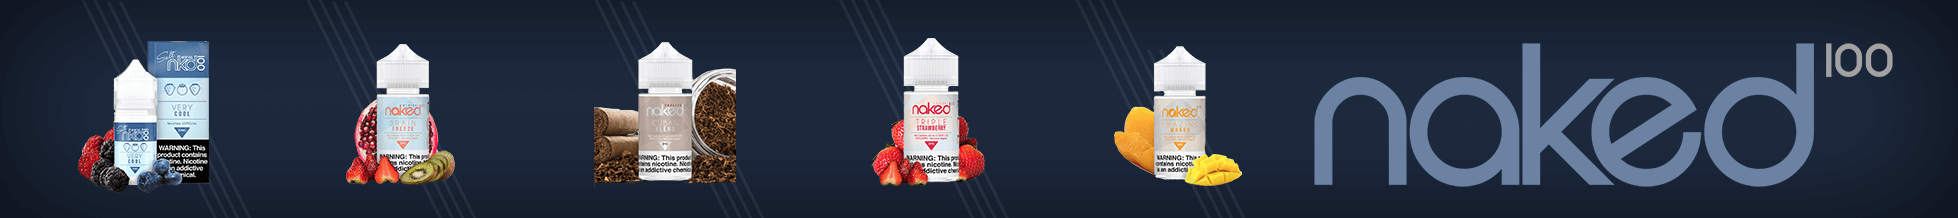 naked-100-category-banner.png